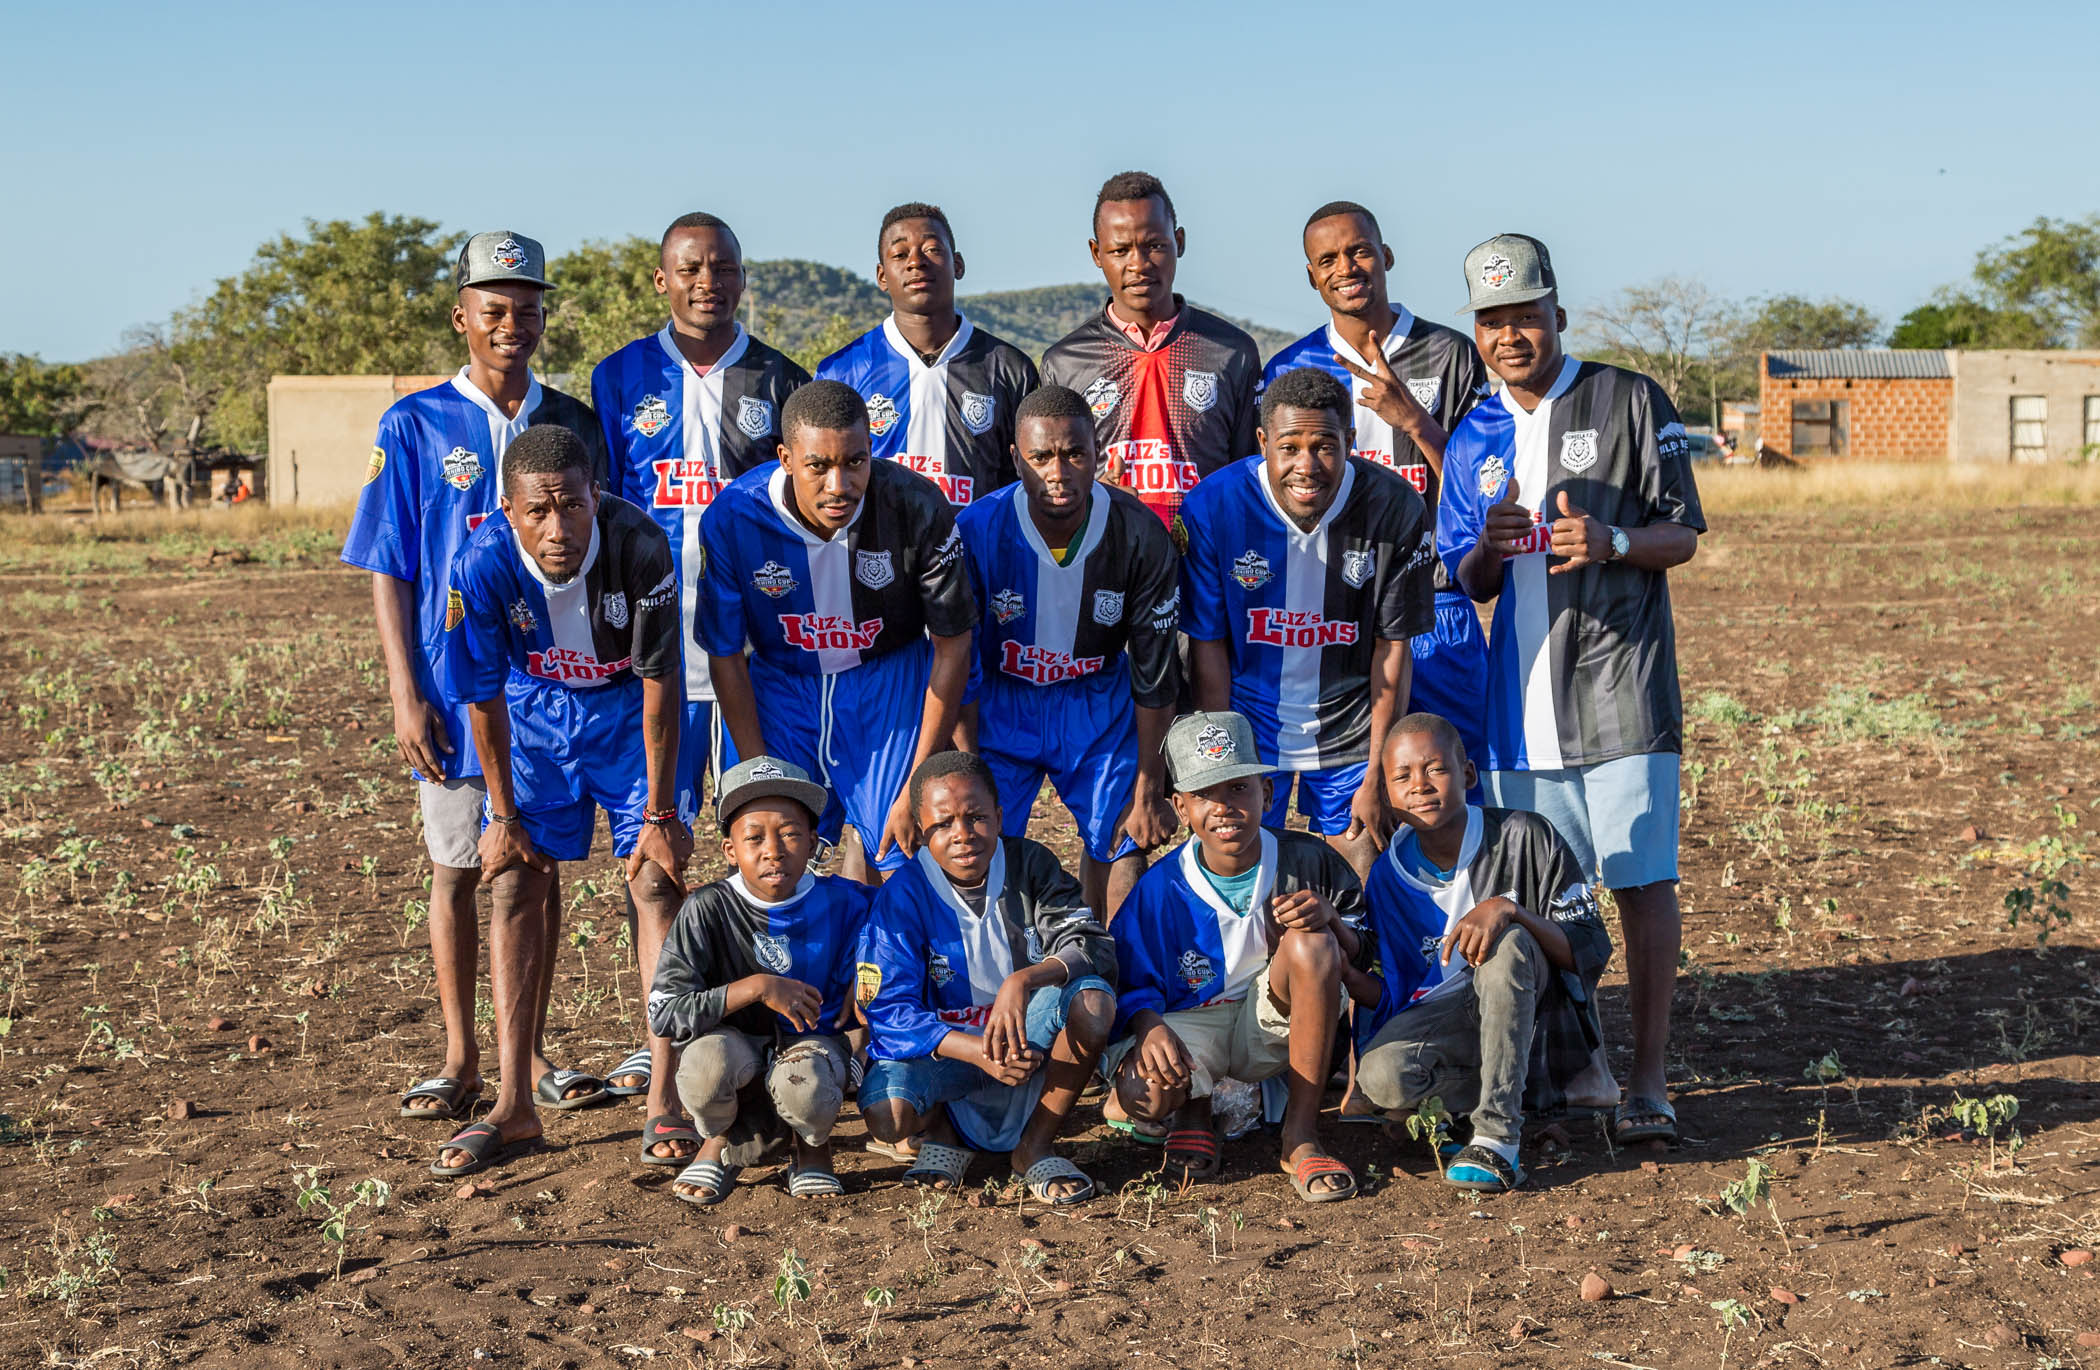 Tchuela FC Lions Team Photo Rhino Cup Champions League, May 2019